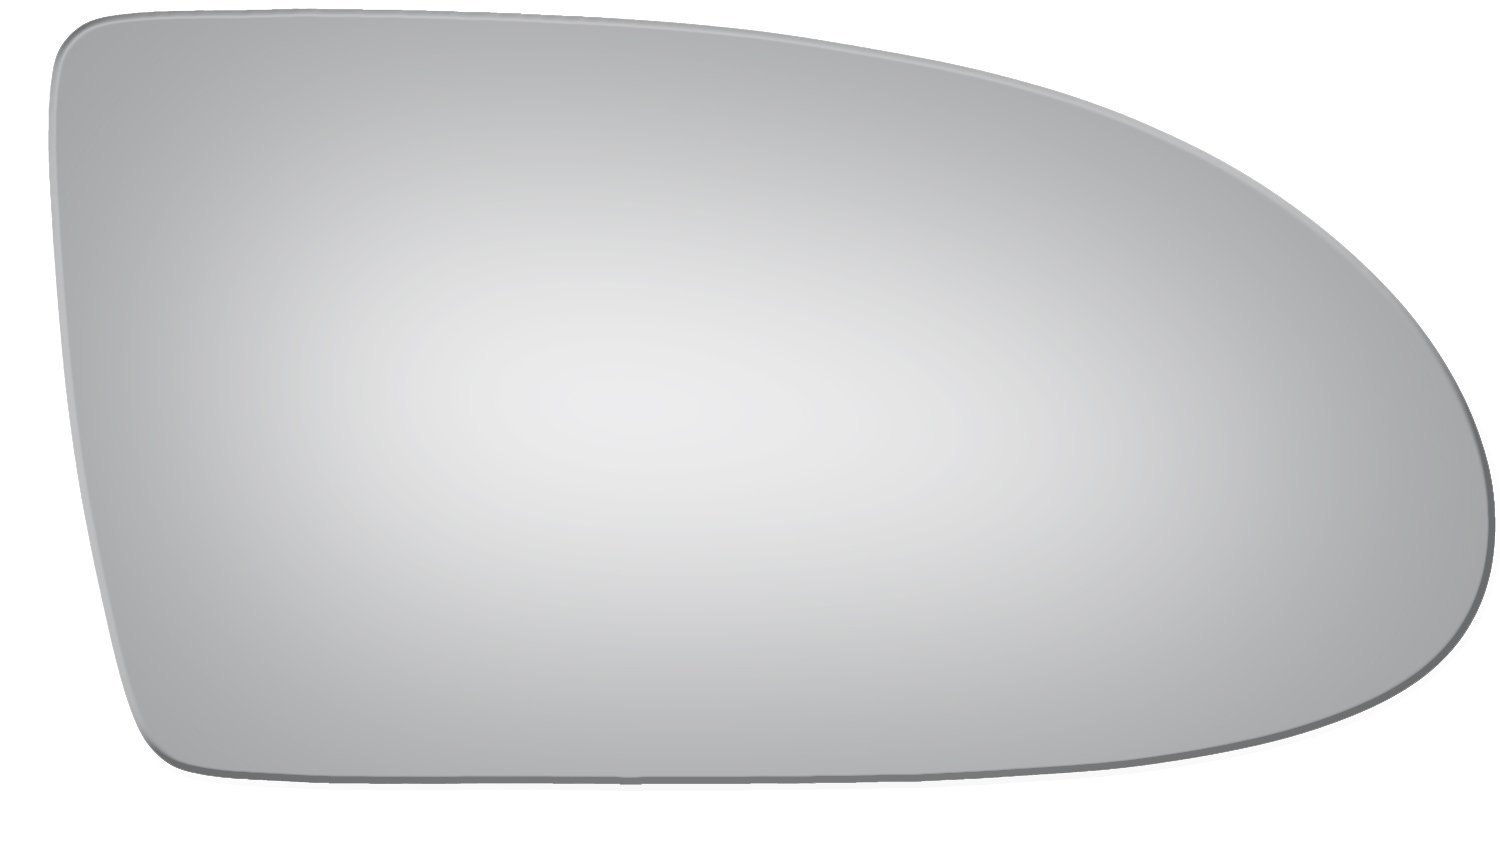 Burco 5255 Convex Passenger Side Manual Replacement Mirror Glass for 06-09 Hyundai Accent (2006, 2007, 2008, 2009)